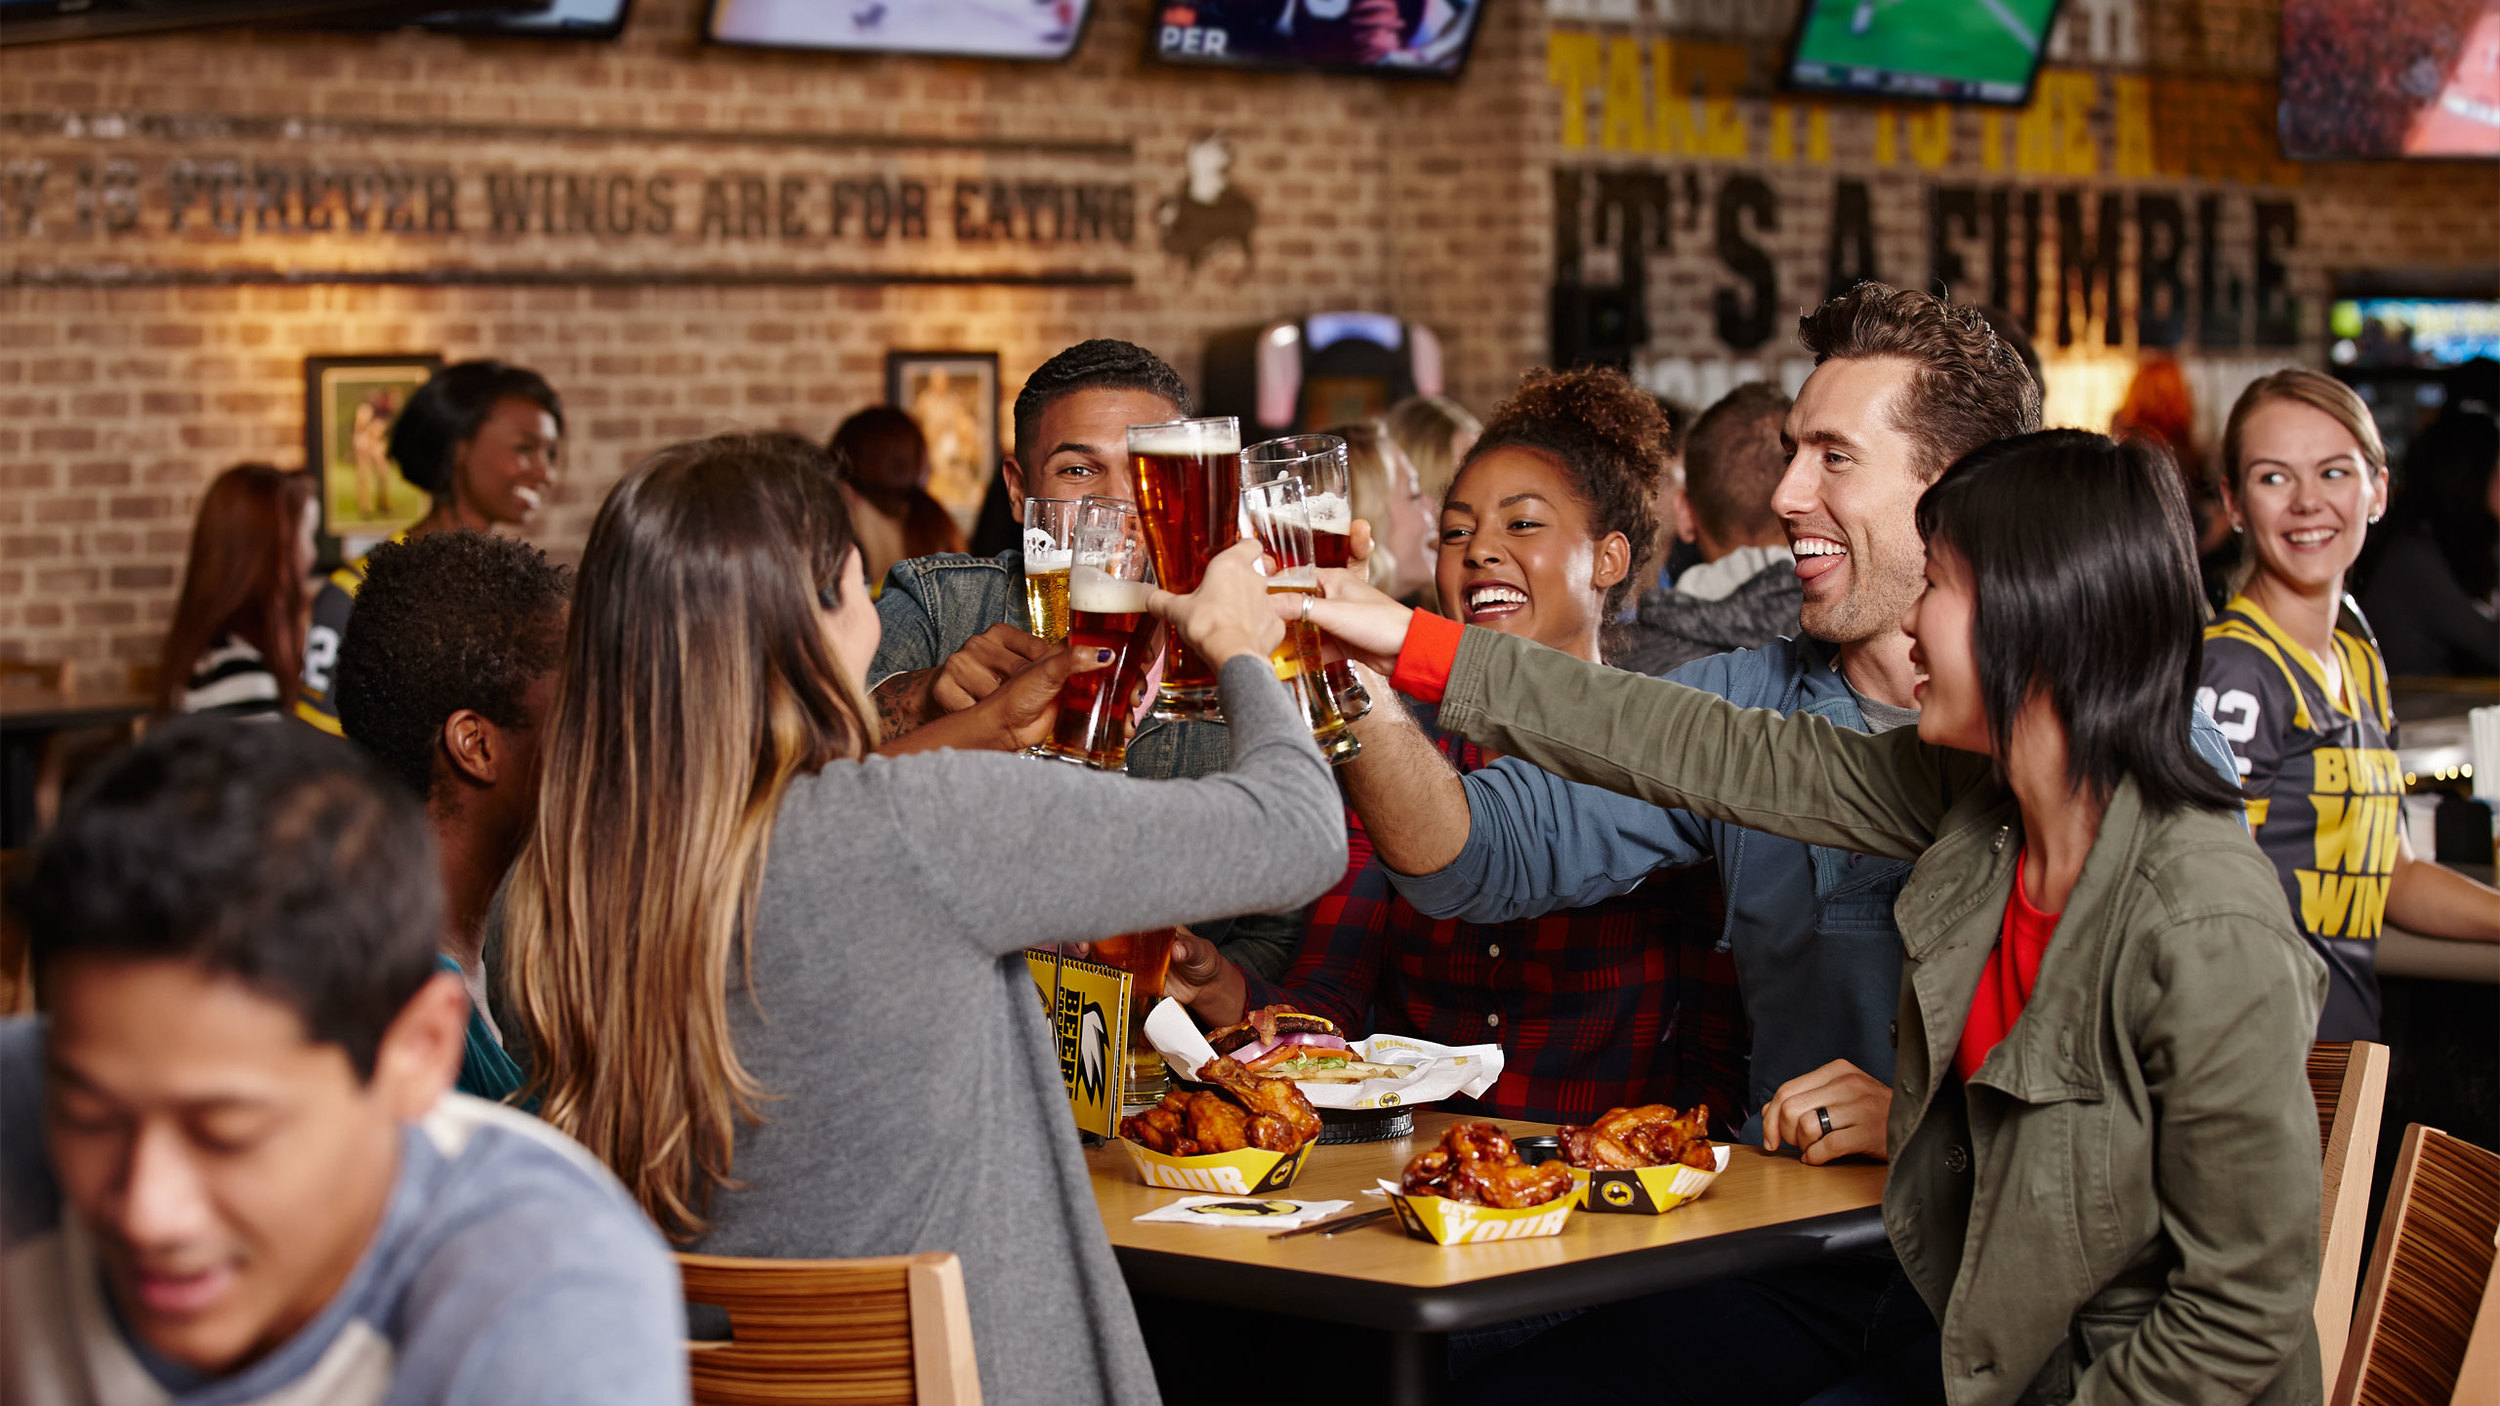 2014_Lifestyle_Cold_Climate_at_Table_Alcohol_00696.jpg